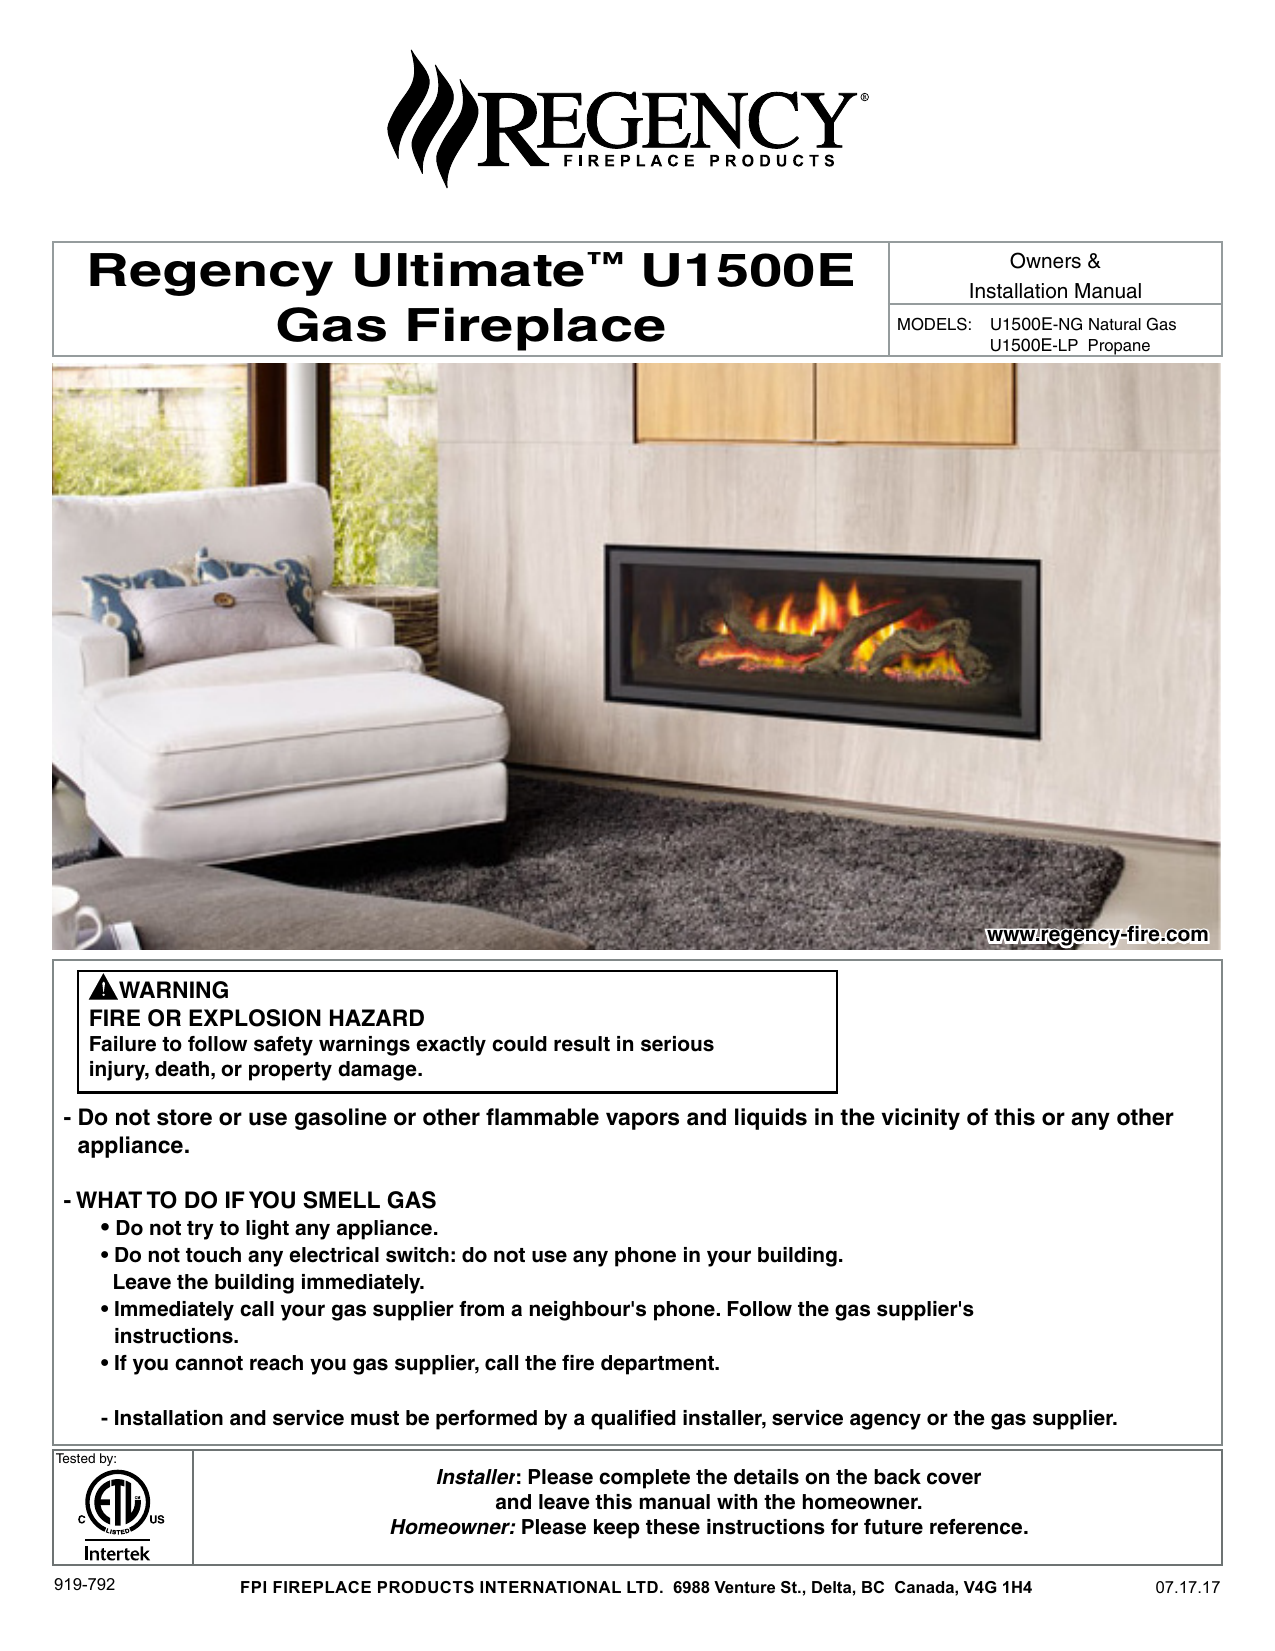 Gas Fireplace Wall Switch Elegant Regency Ultimate™ U1500e Gas Fireplace